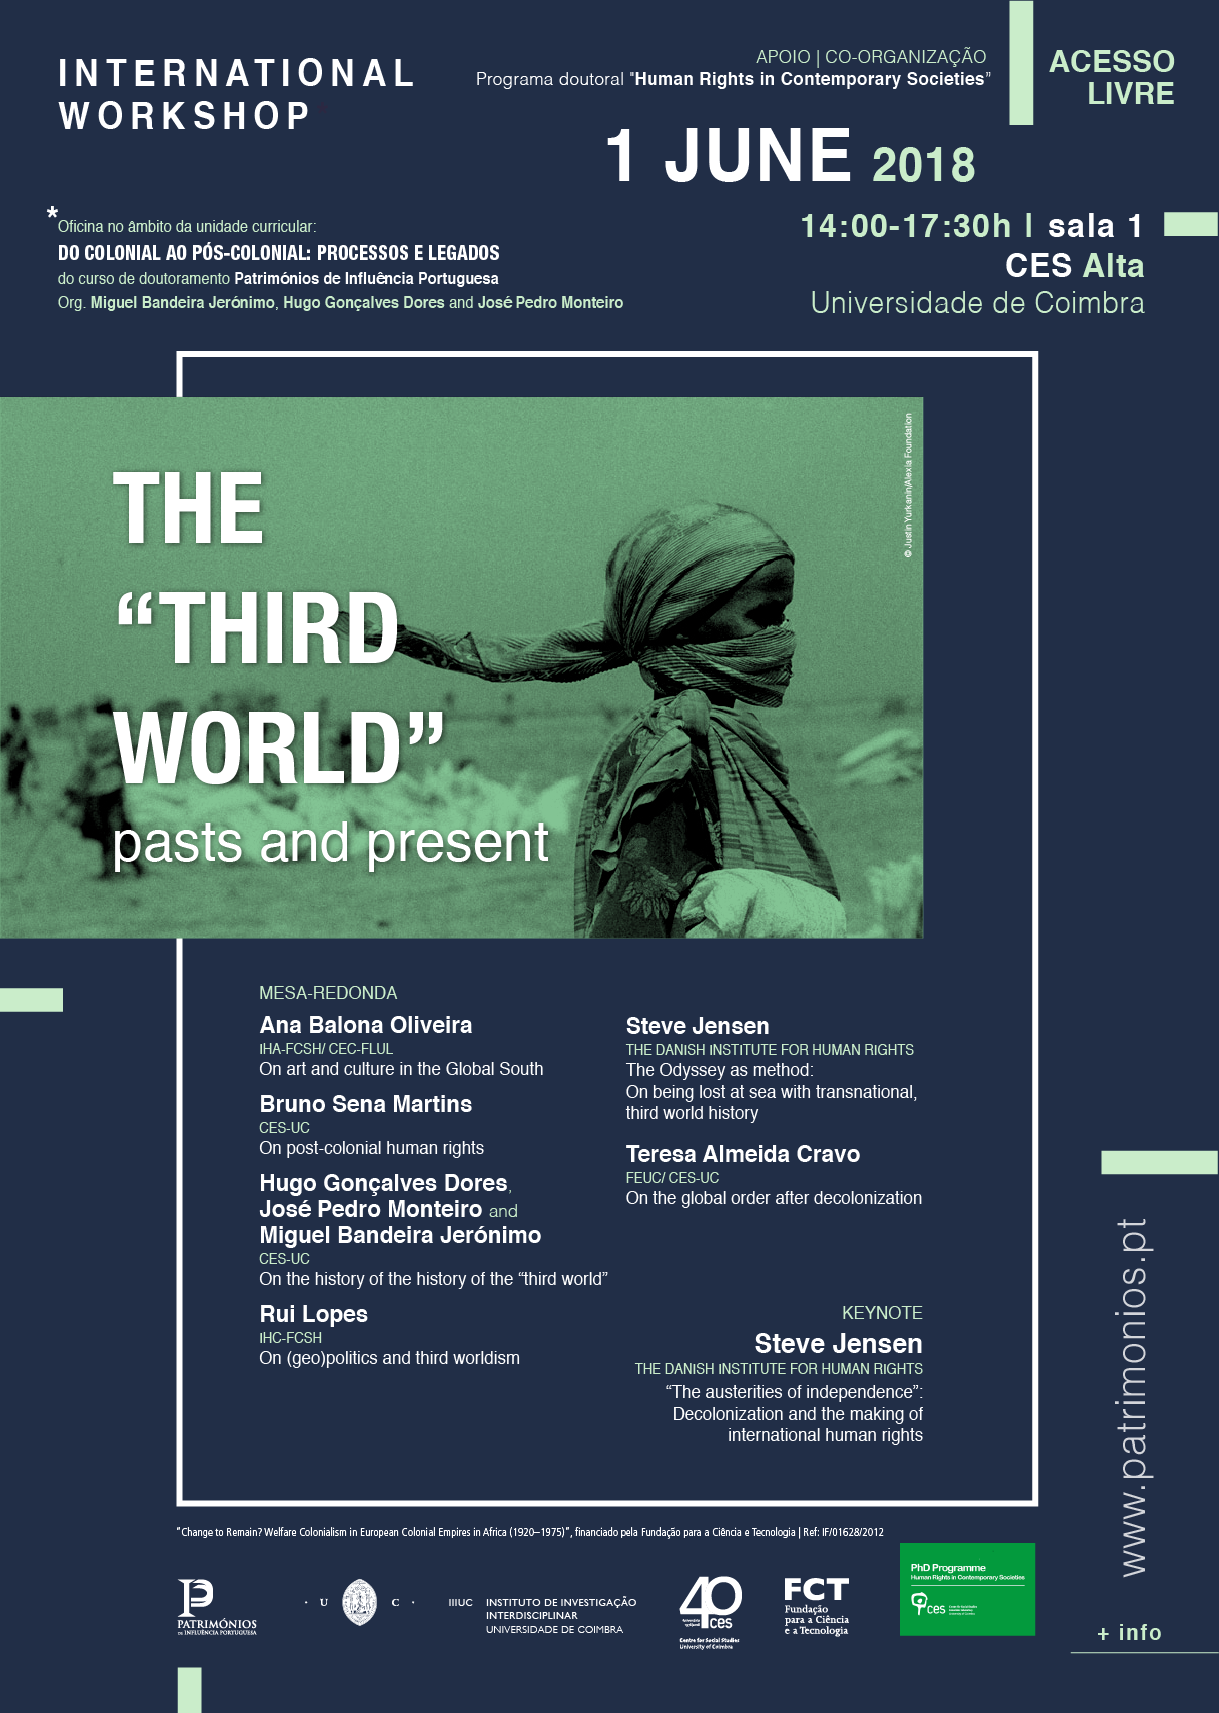 """The «Third World»: Pasts and present<span id=""""edit_19986""""><script>$(function() { $('#edit_19986').load( """"/myces/user/editobj.php?tipo=evento&id=19986"""" ); });</script></span>"""